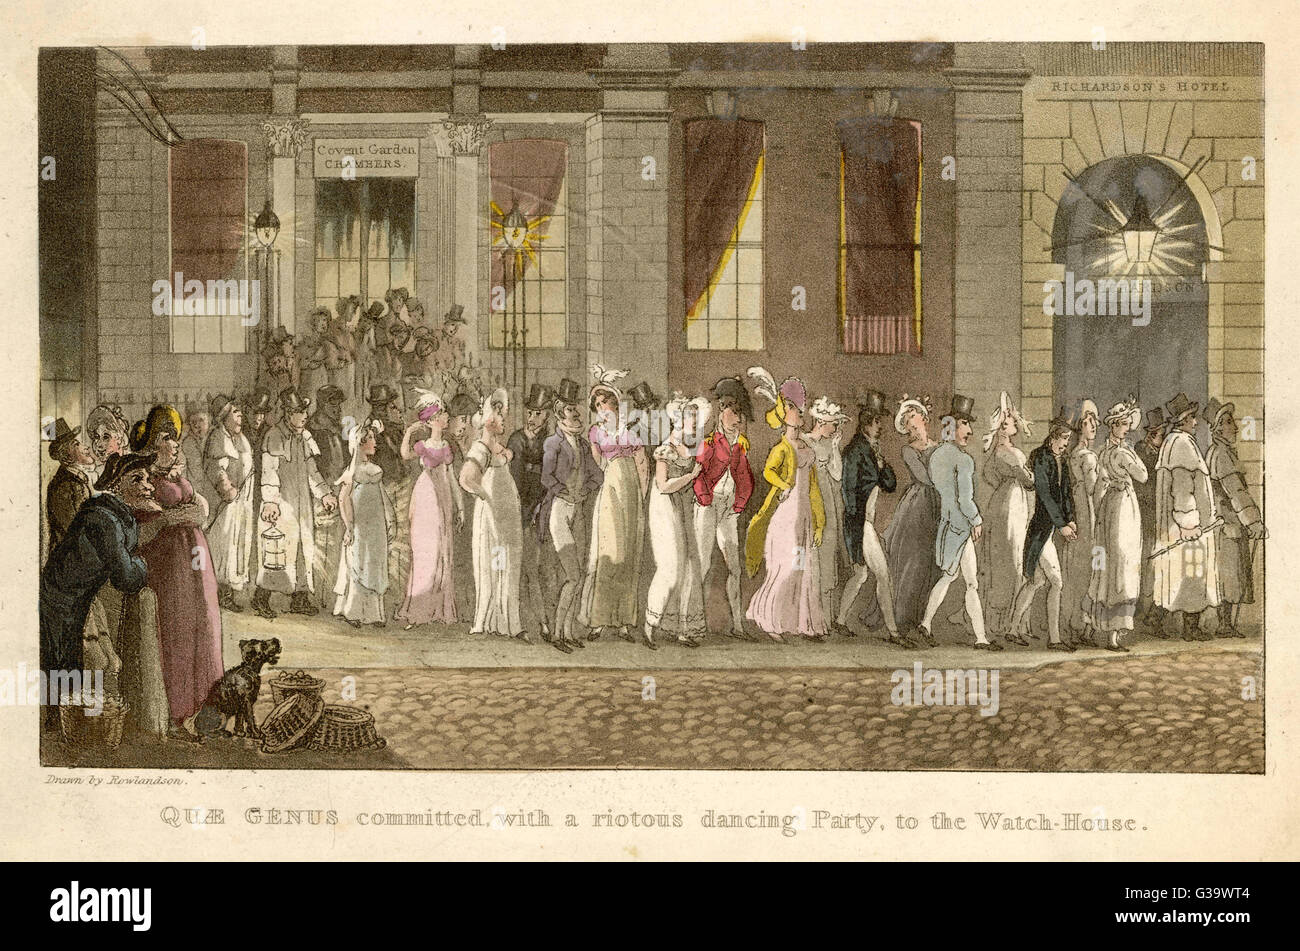 Quae Genus committed, with a  riotous dancing Party, to the  Watch-House.       Date: 1821 - Stock Image